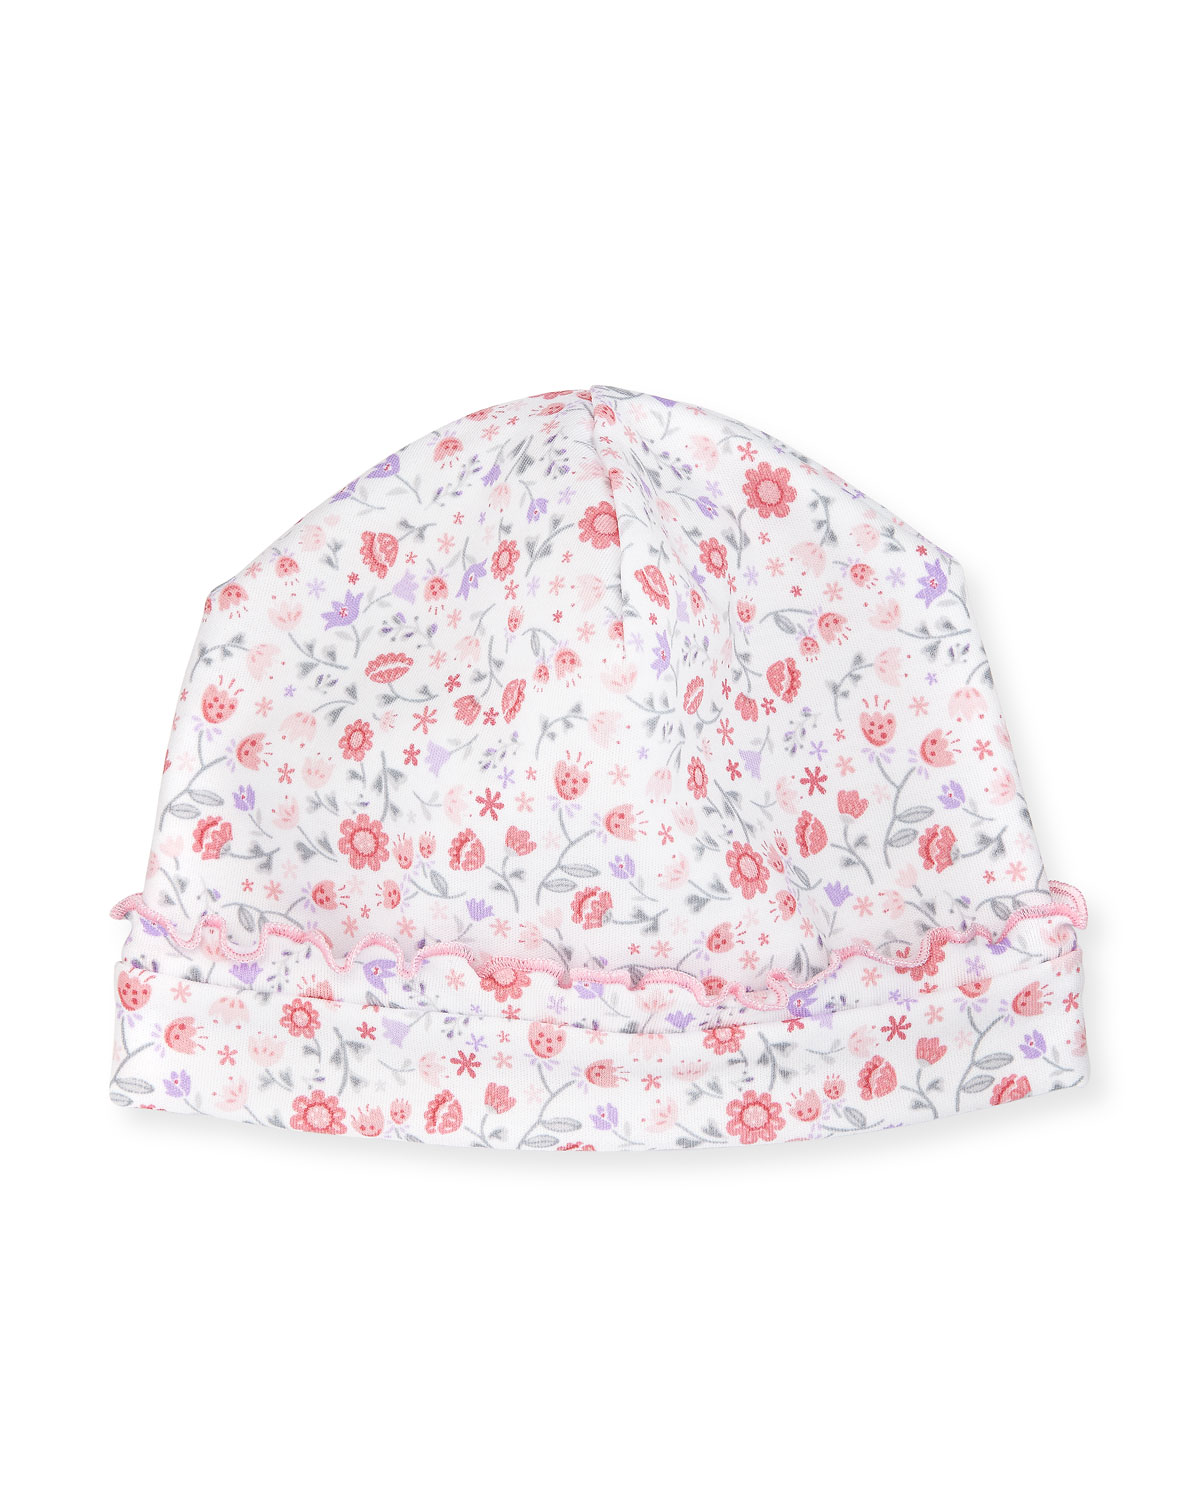 Fall Blossoms Pima Baby Hat, Pink